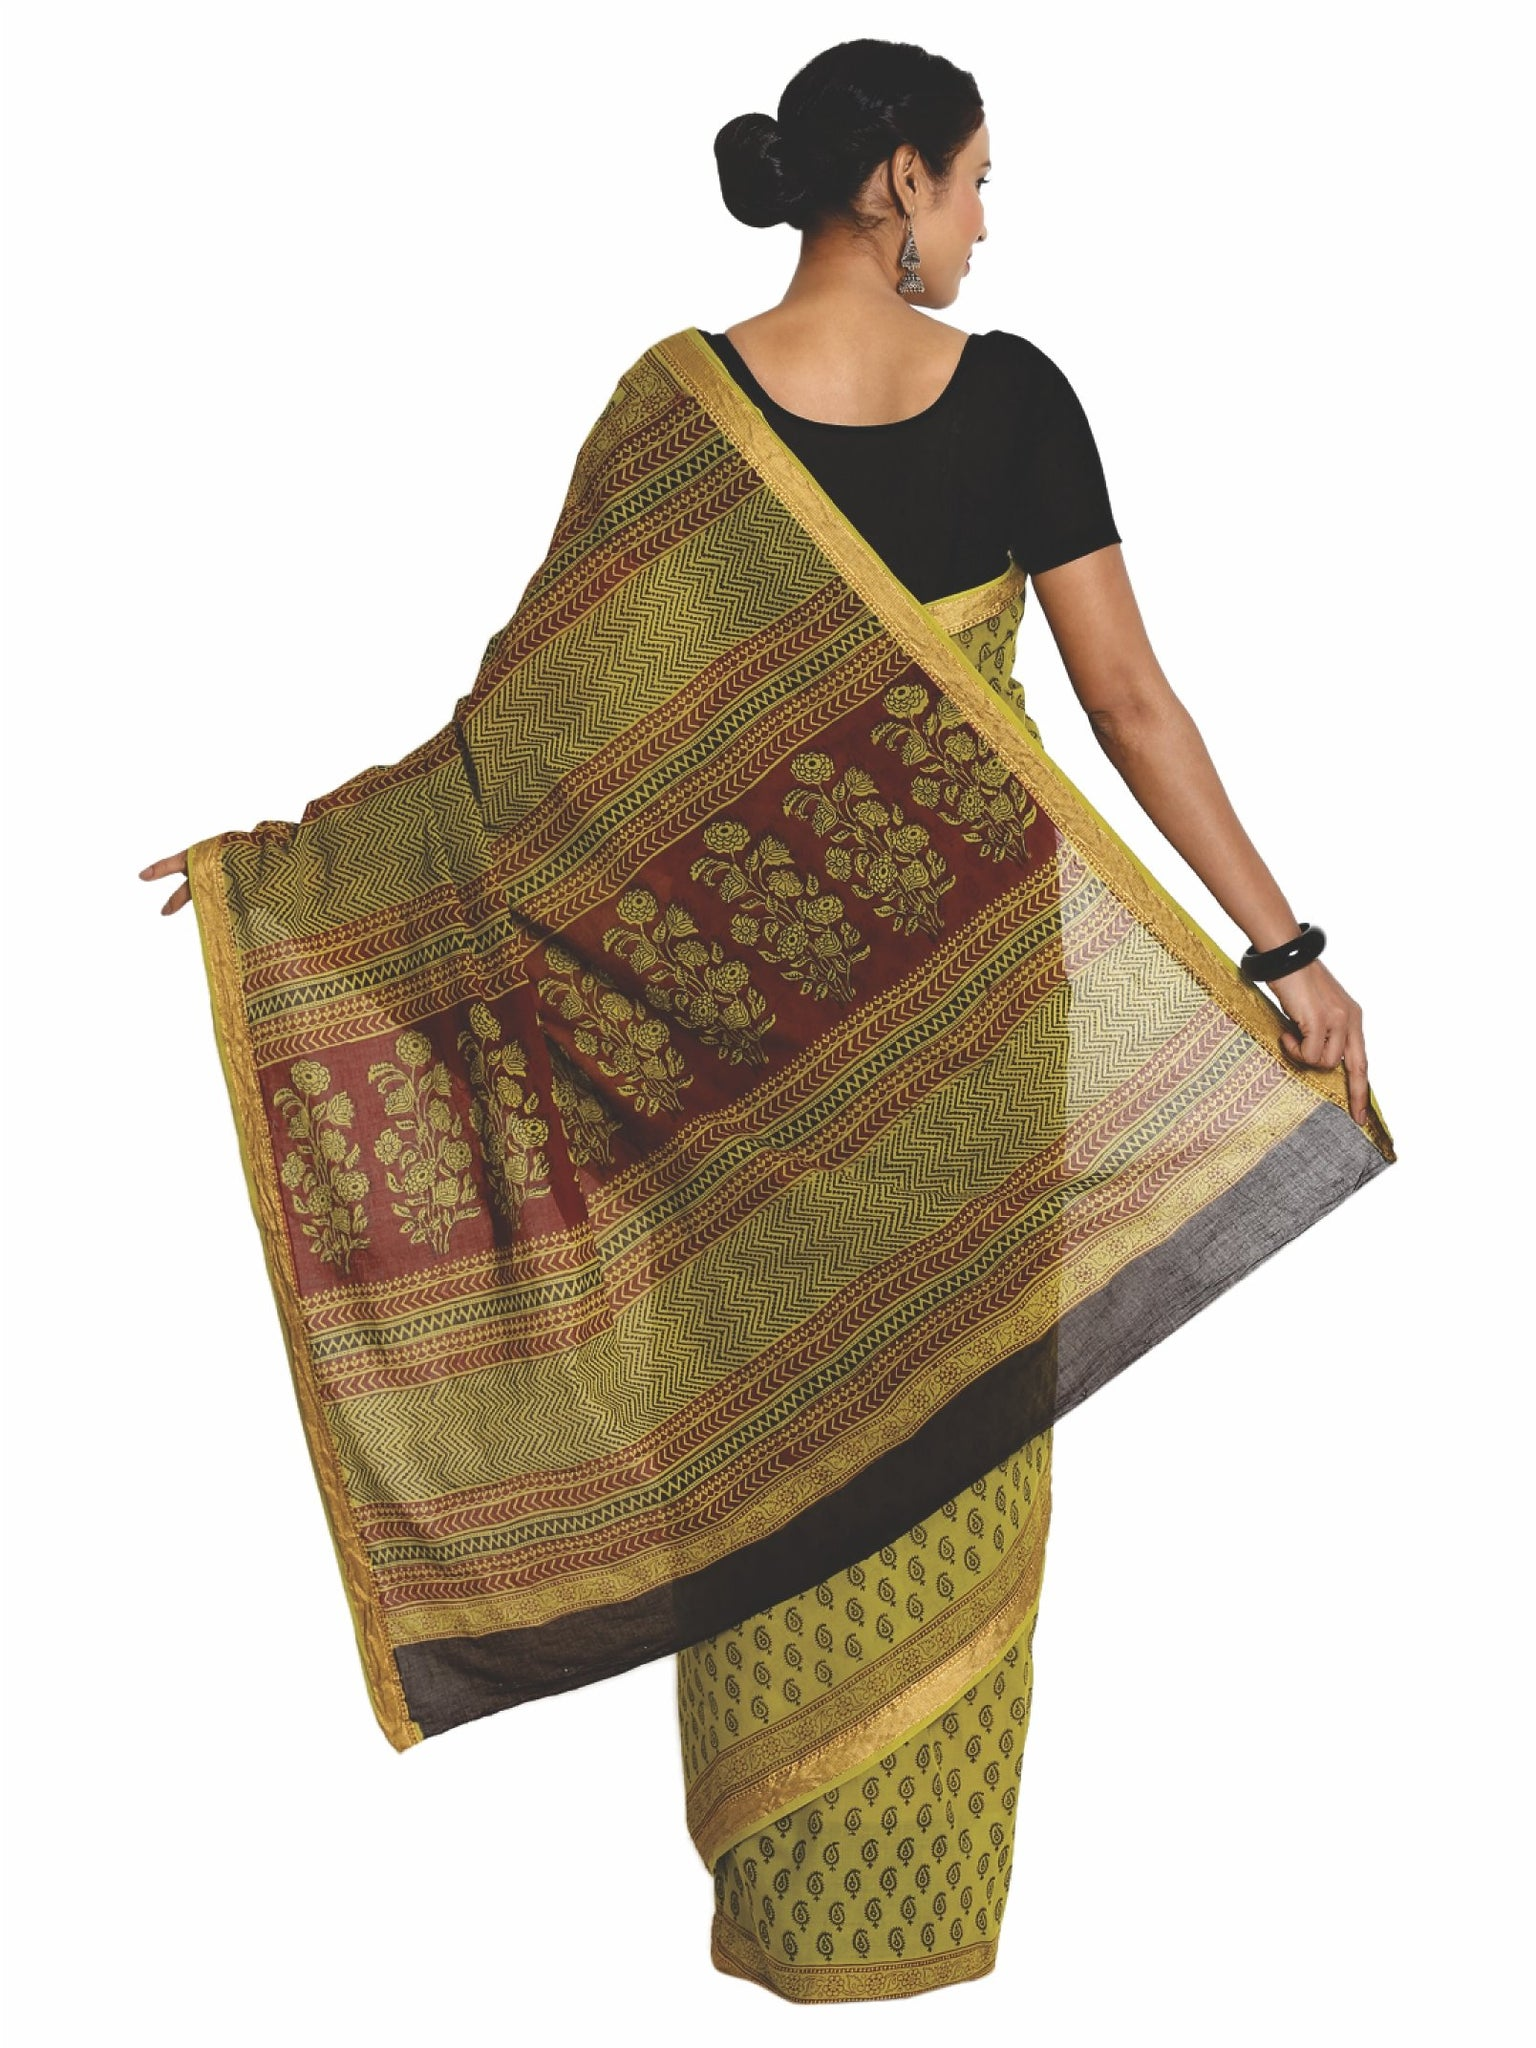 Green Cotton Hand Block Bagh Print Handcrafted Saree-Saree-Kalakari India-ZIBASA0079-Bagh, Cotton, Geographical Indication, Hand Blocks, Hand Crafted, Heritage Prints, Natural Dyes, Sarees, Sustainable Fabrics-[Linen,Ethnic,wear,Fashionista,Handloom,Handicraft,Indigo,blockprint,block,print,Cotton,Chanderi,Blue, latest,classy,party,bollywood,trendy,summer,style,traditional,formal,elegant,unique,style,hand,block,print, dabu,booti,gift,present,glamorous,affordable,collectible,Sari,Saree,printed, ho